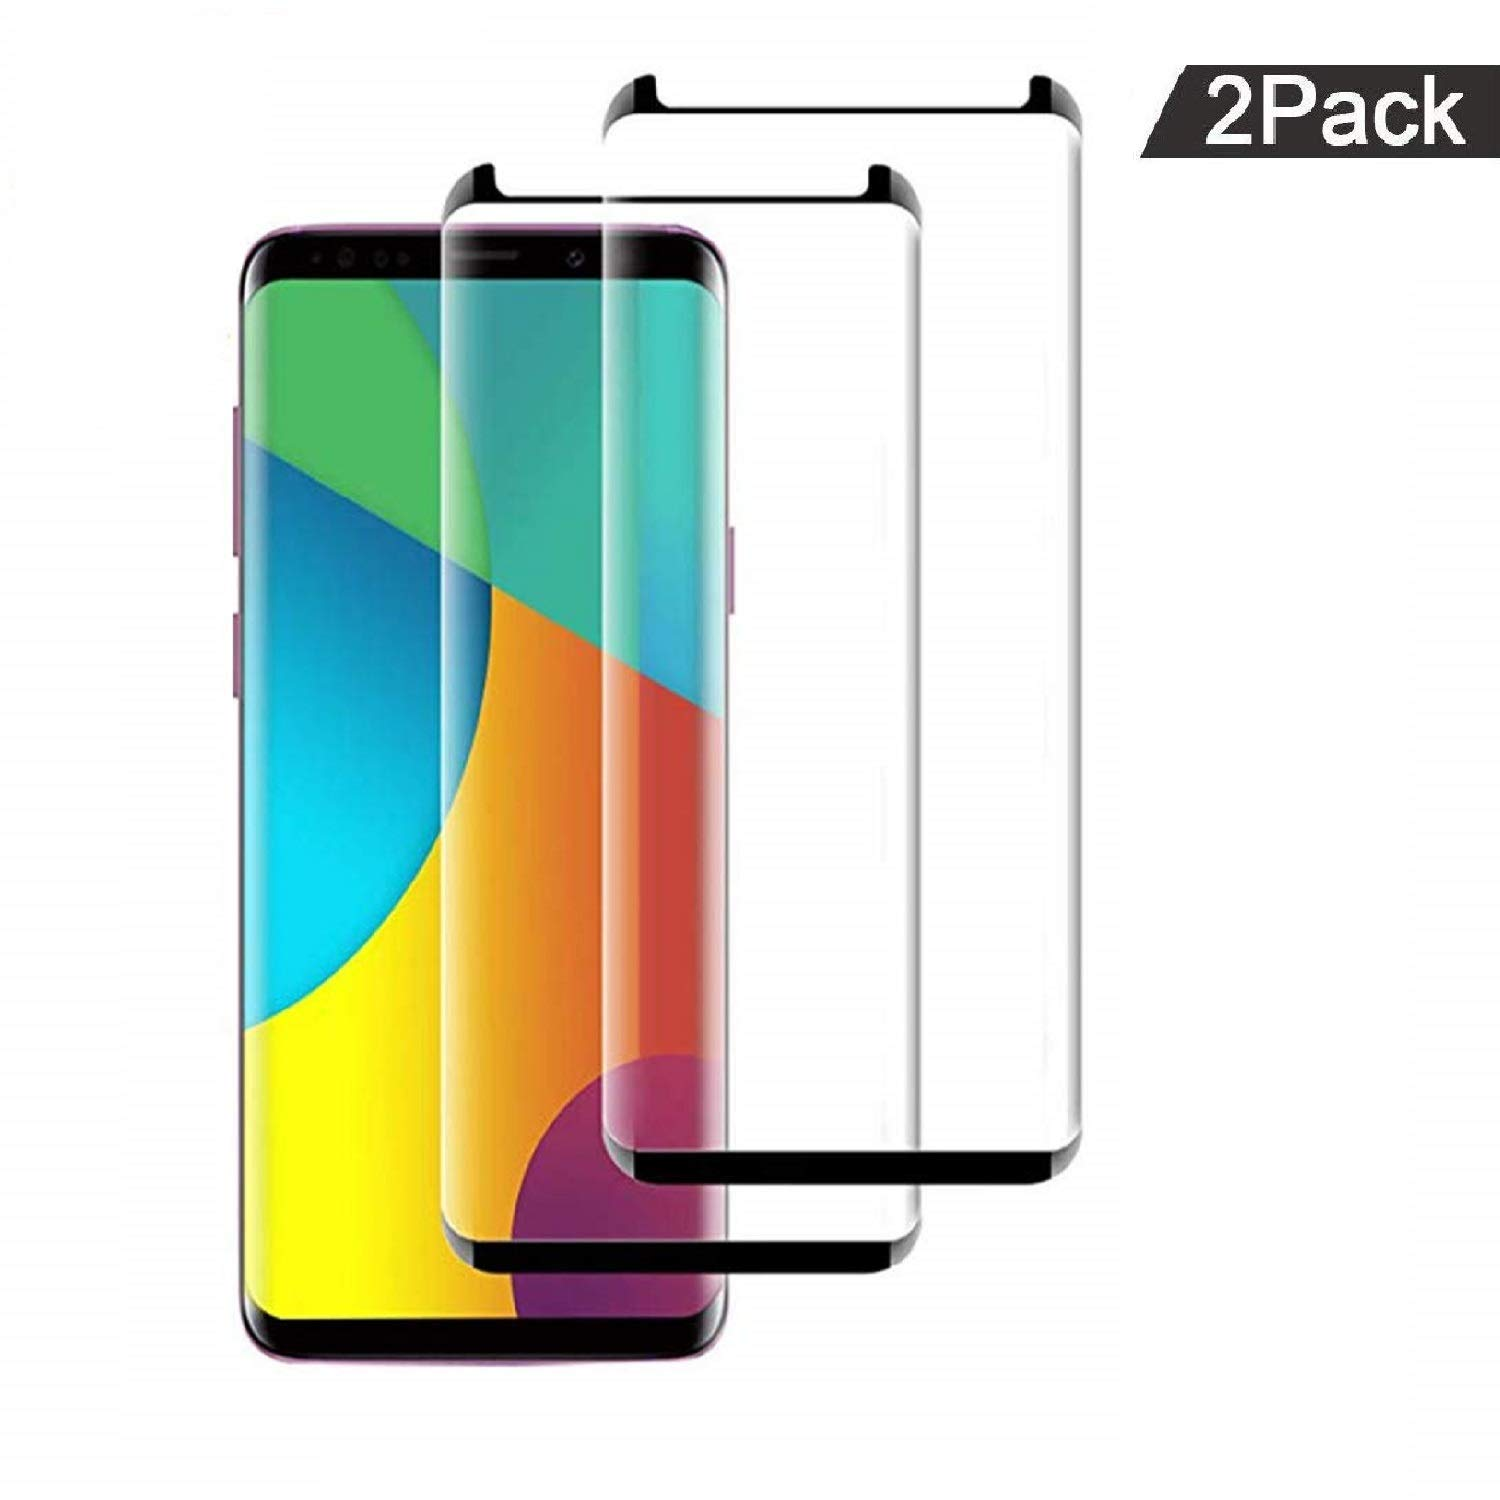 (2 Pack) Galaxy S9 Screen Protector 3D Curved Glass, [Case Friendly] [Bubble Free] Ultra Thin HD Clear 9H Hardness Anti-Scratch Crystal Clear Screen Protector for Samsung Galaxy S9 (NOT S9 Plus) by BALABEAN